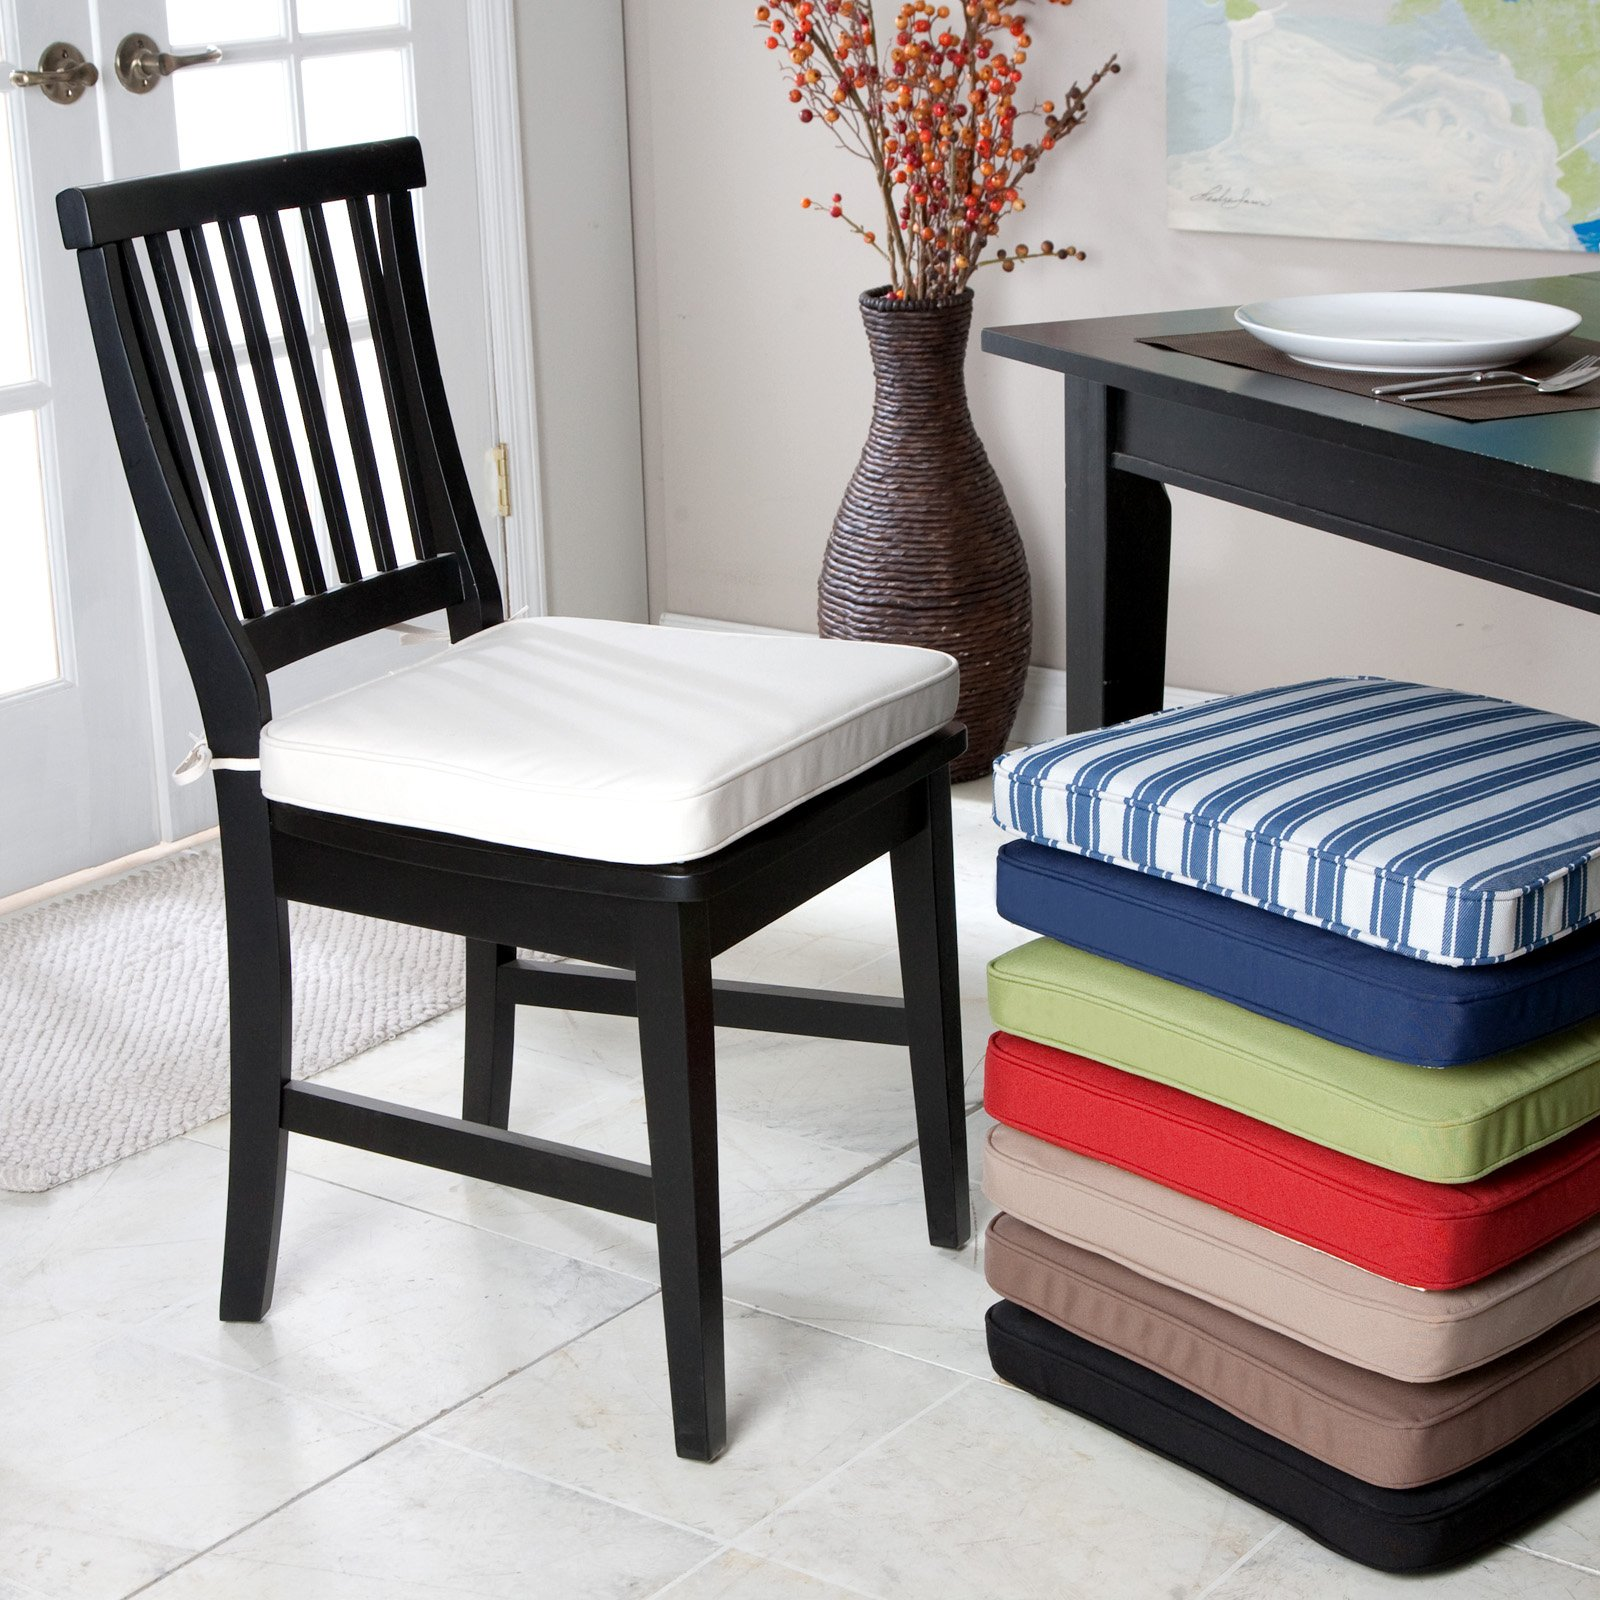 seat cushions dining room chairs photo - 1